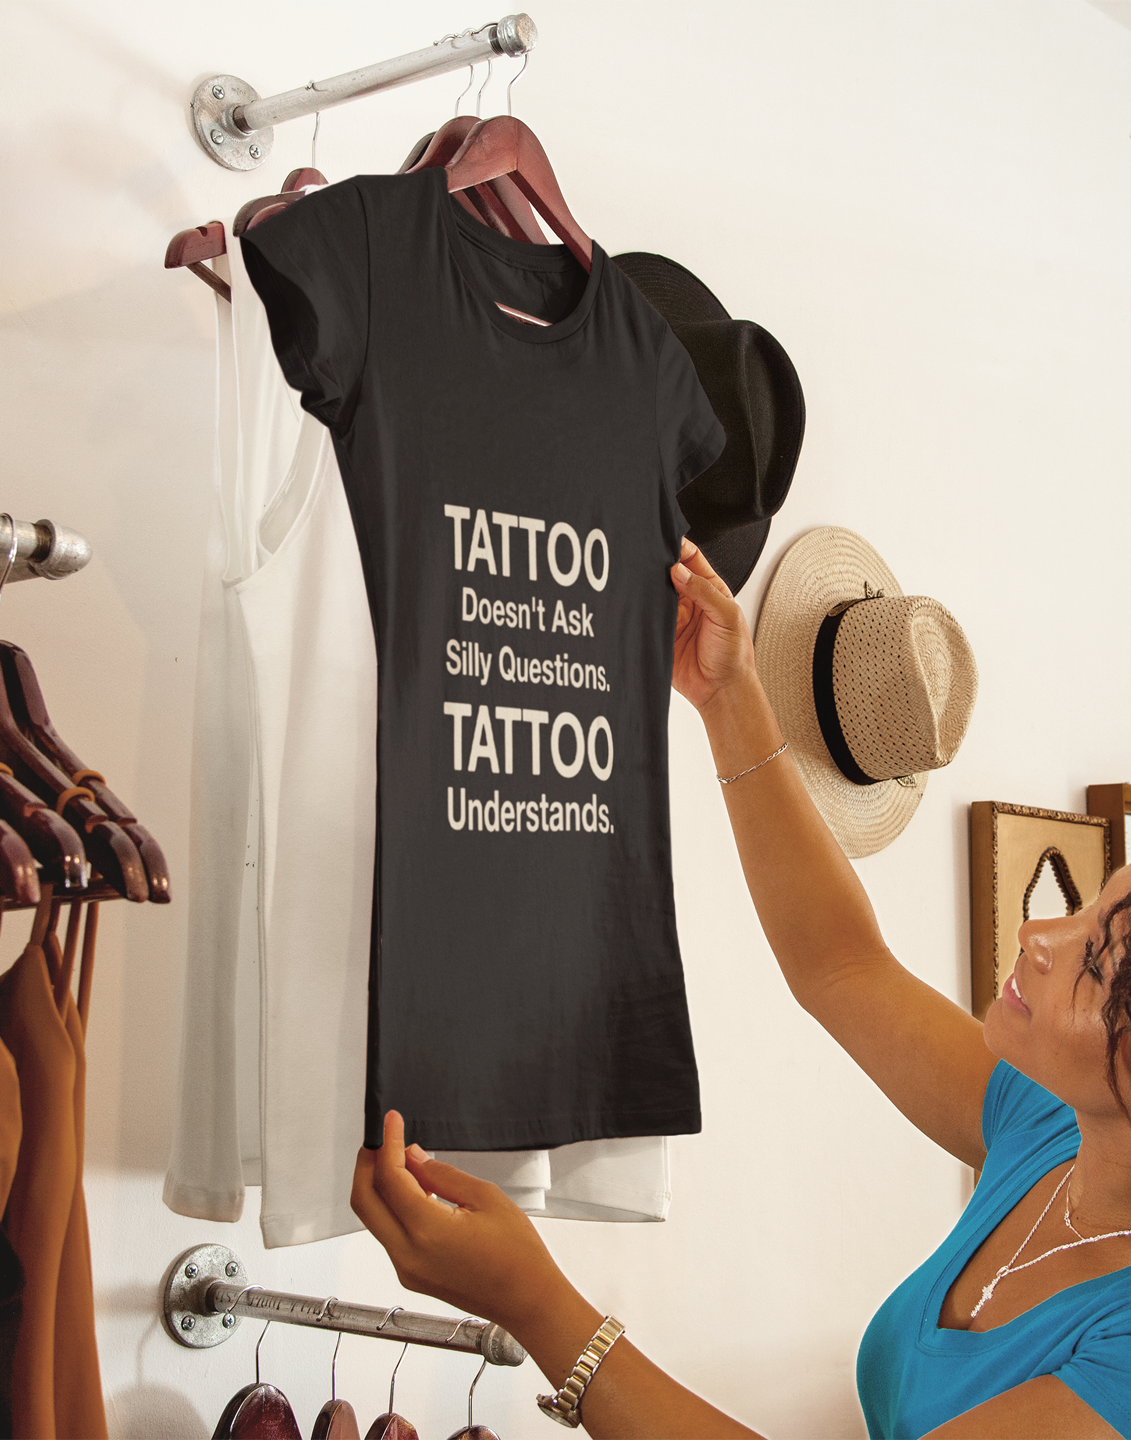 Nice tattoo shirt design for men and women for sale now